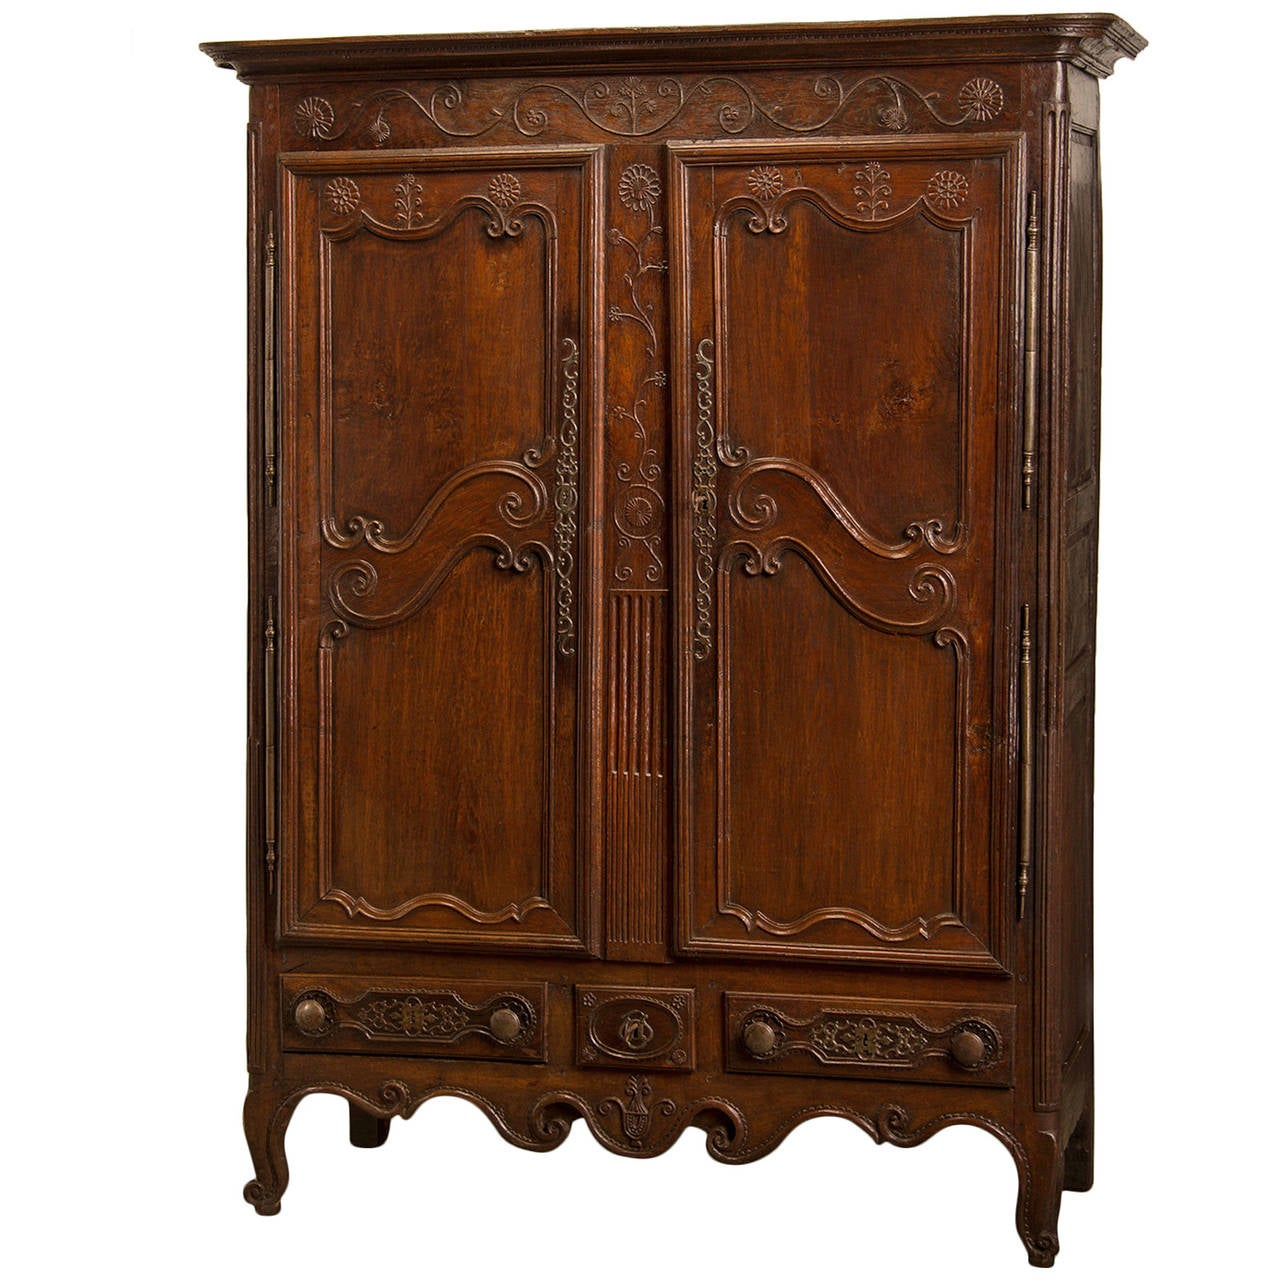 louis xvi period oak armoire original hardware france circa 1780 at 1stdibs. Black Bedroom Furniture Sets. Home Design Ideas